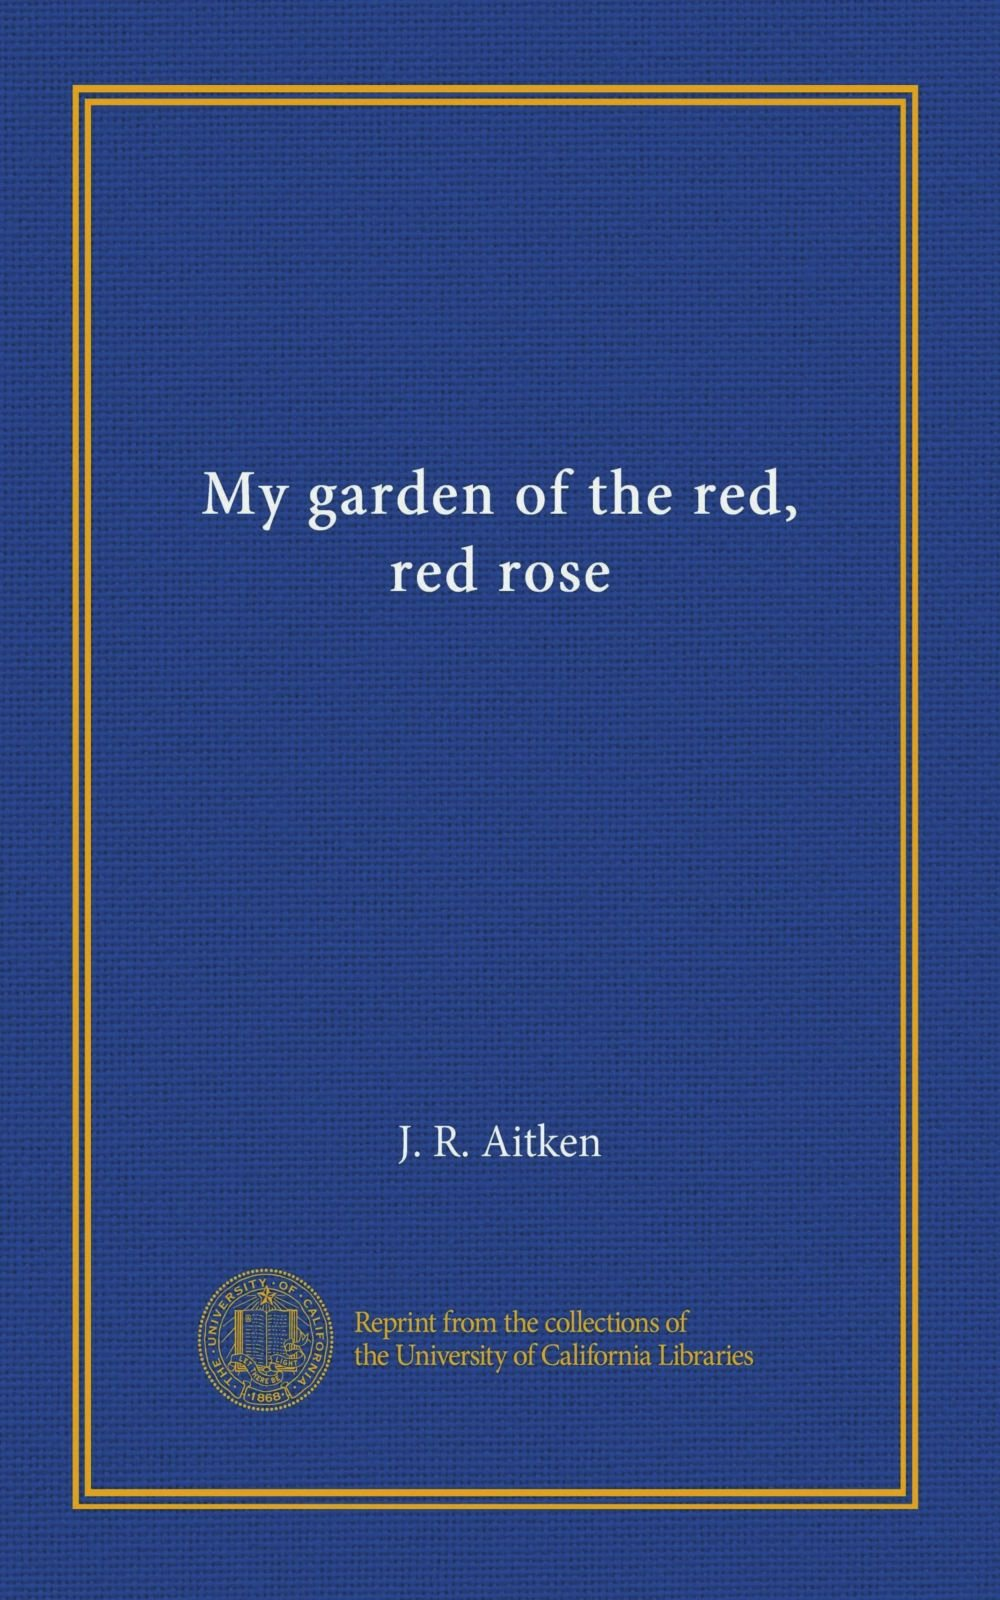 My garden of the red, red rose pdf